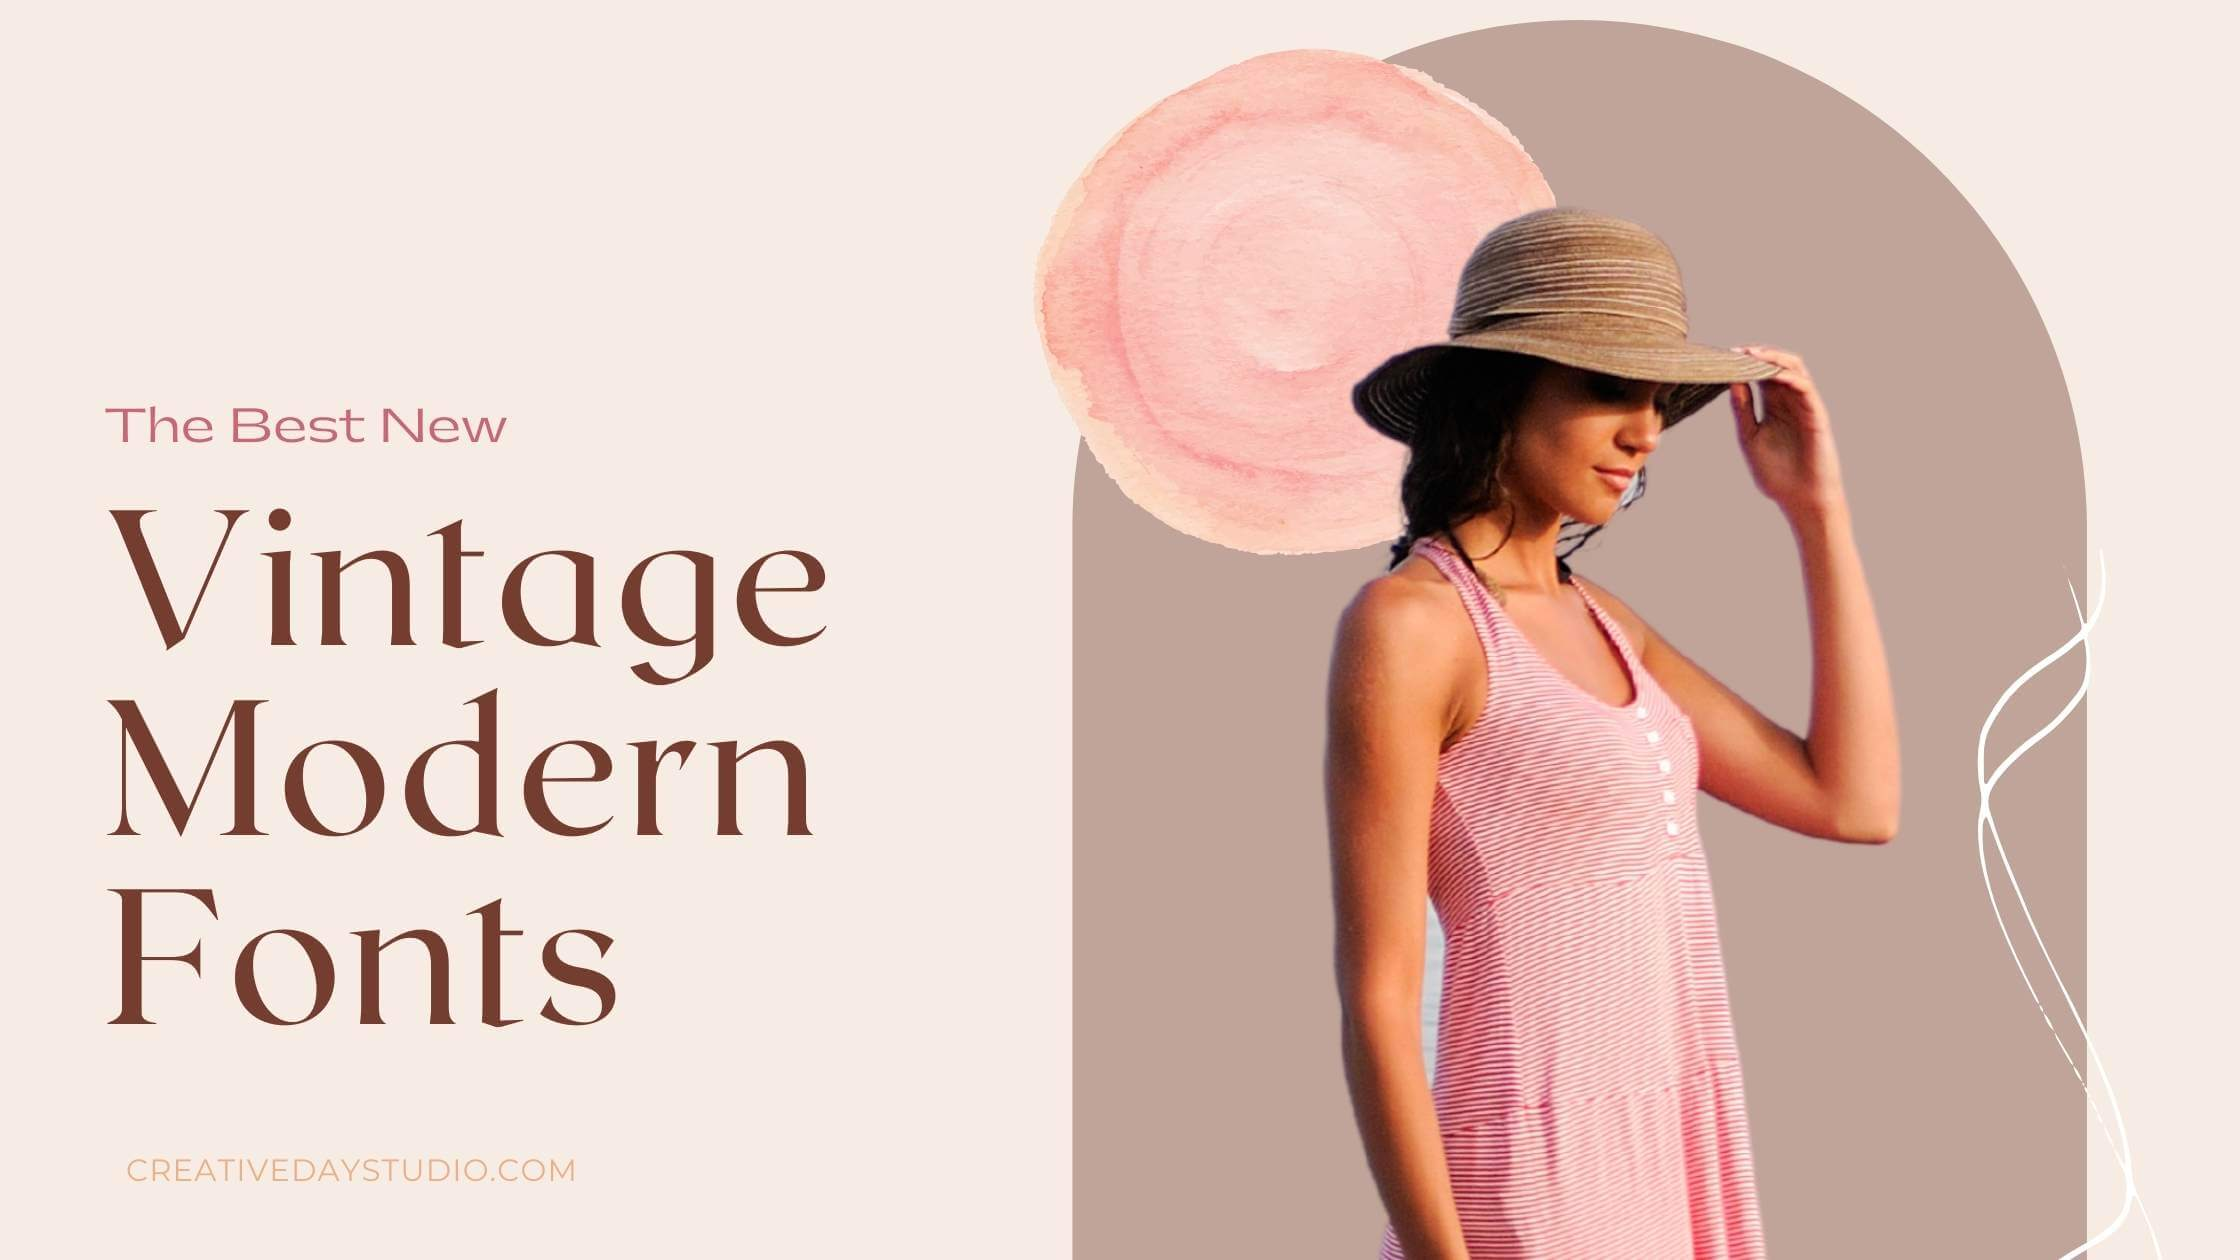 Best New Vintage Modern Fonts Blog Cover Image Presentation 2